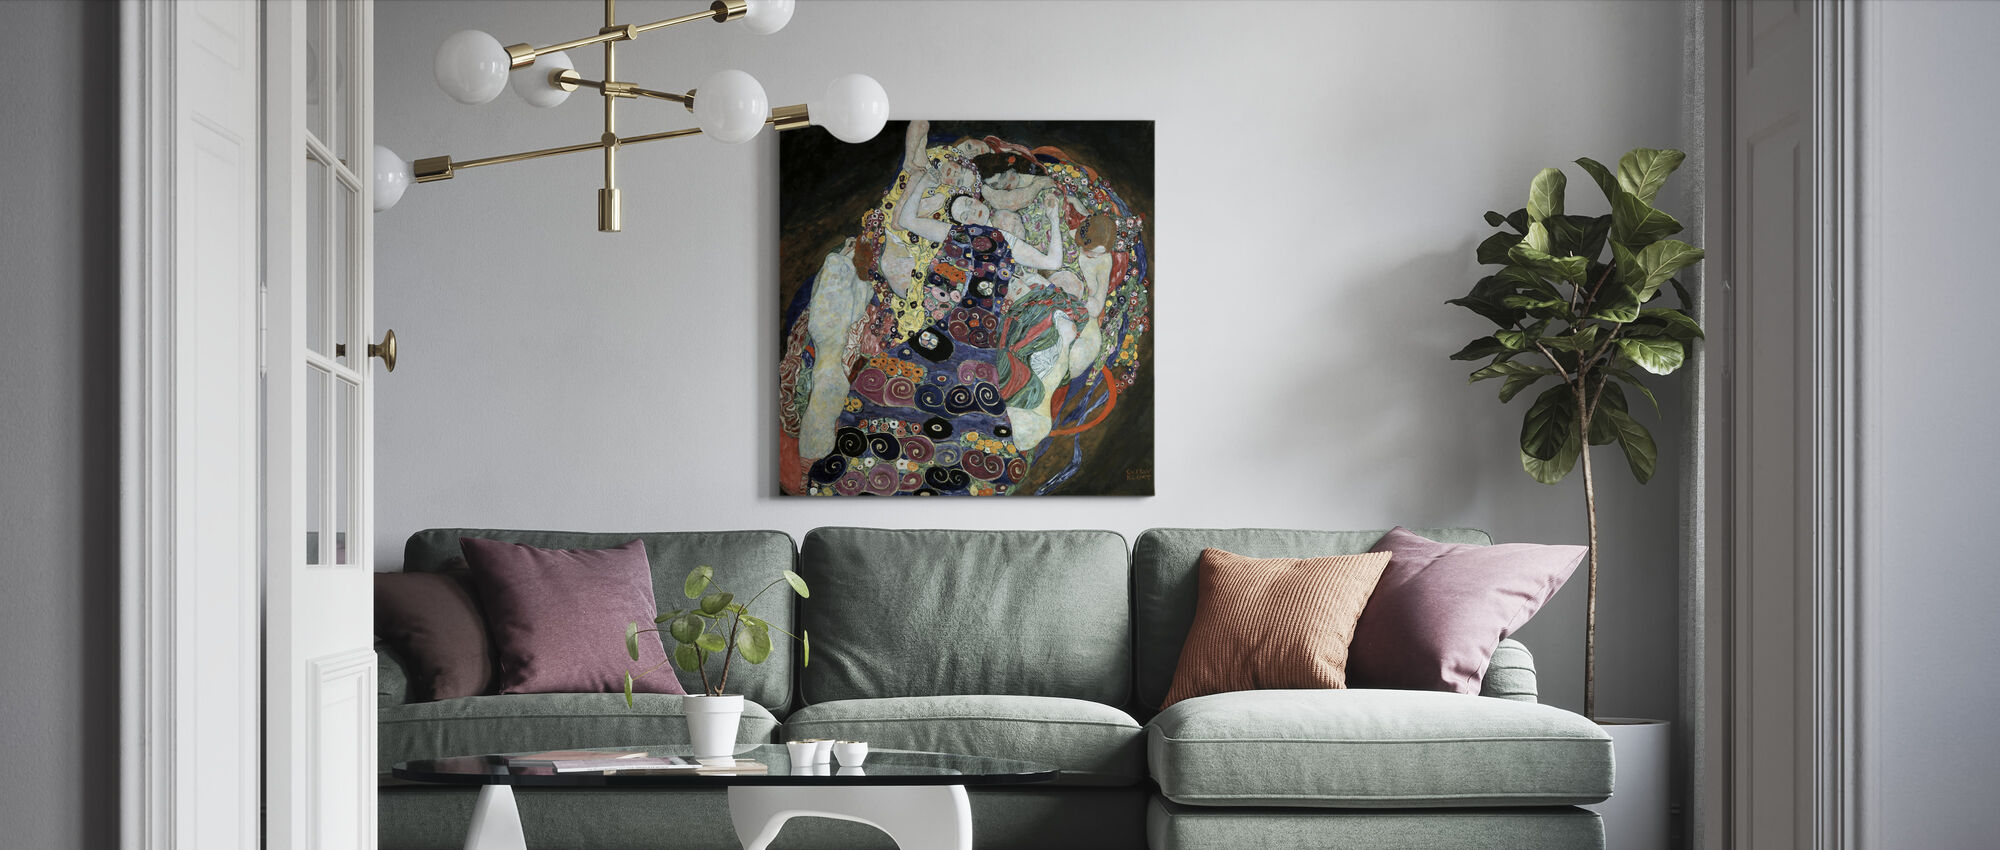 Maagd - Canvas print - Woonkamer